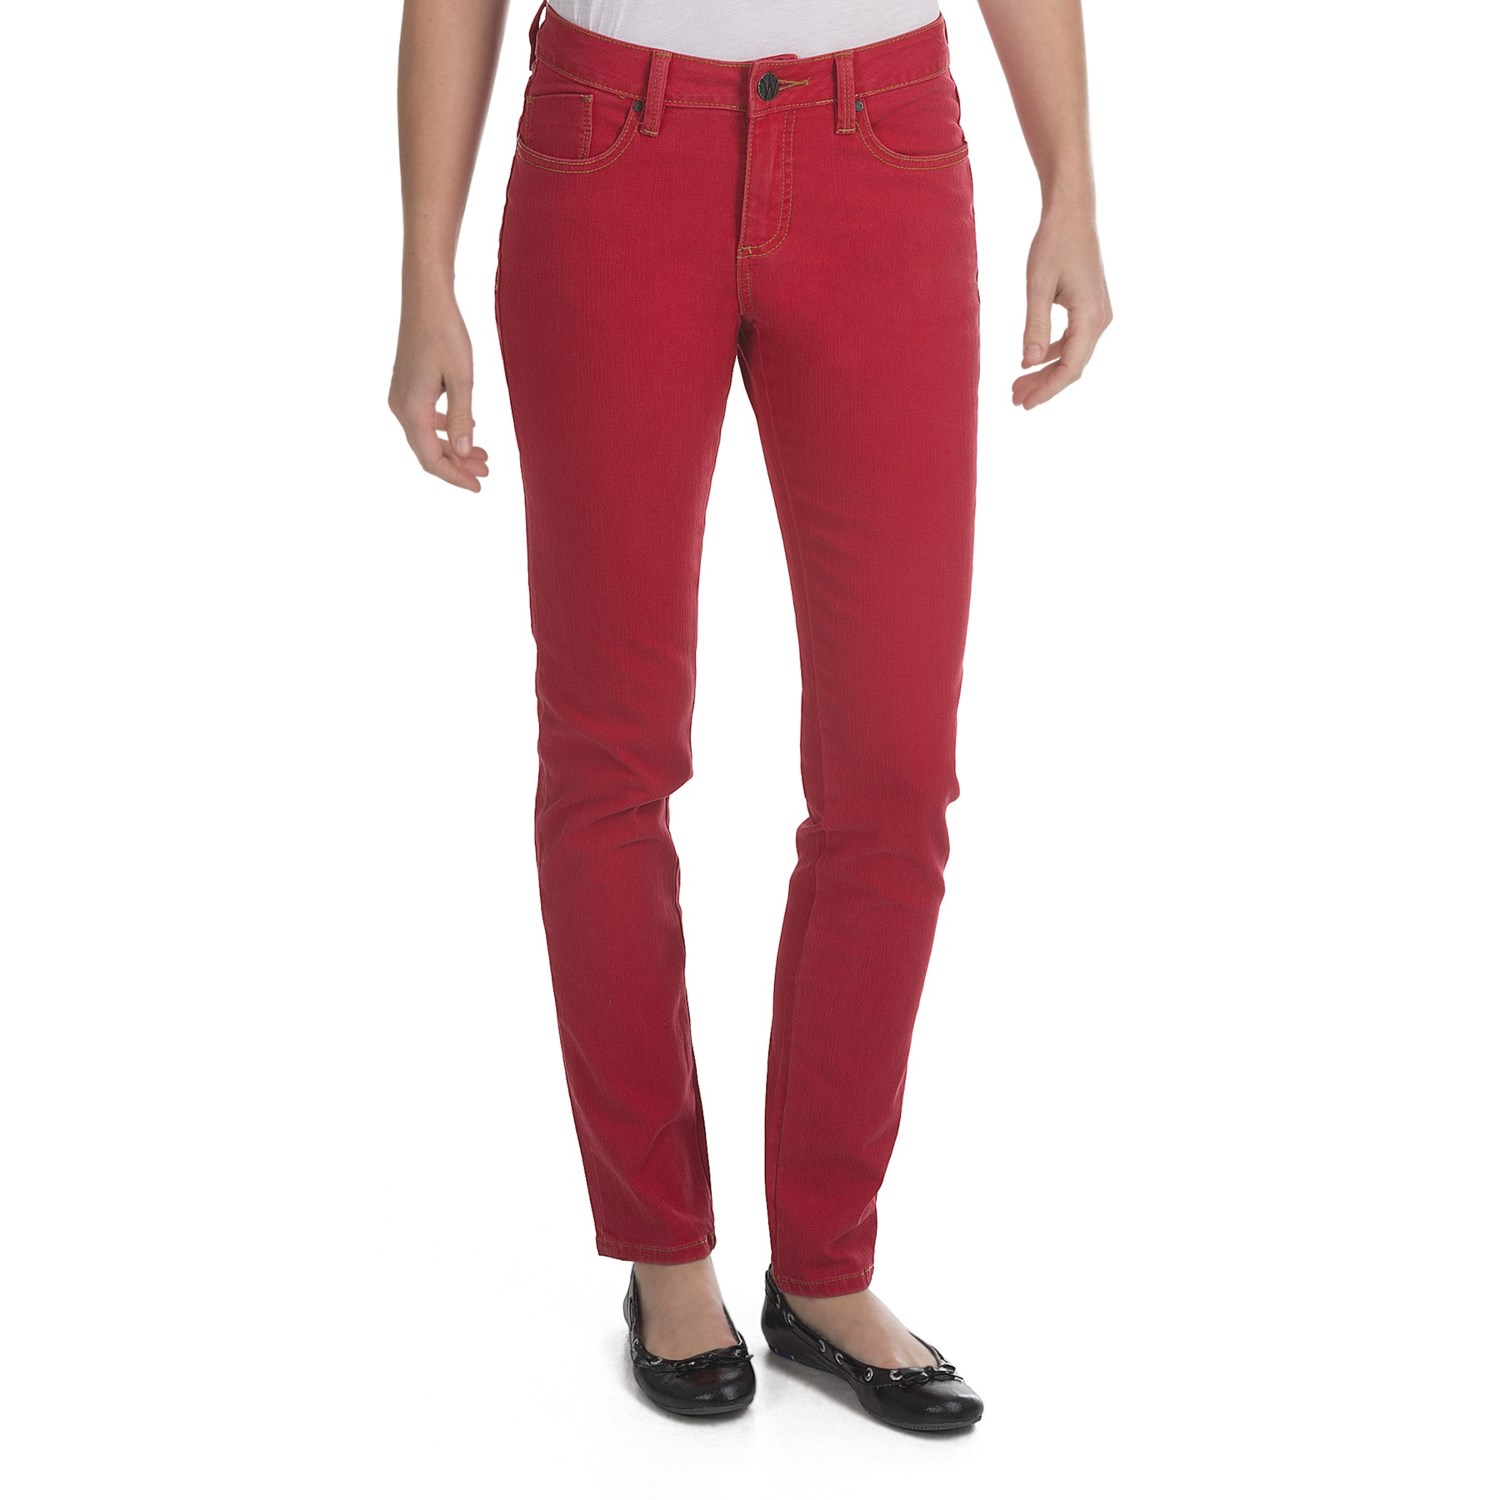 Free shipping and returns on Women's Colorful Skinny Jeans at specialtysports.ga